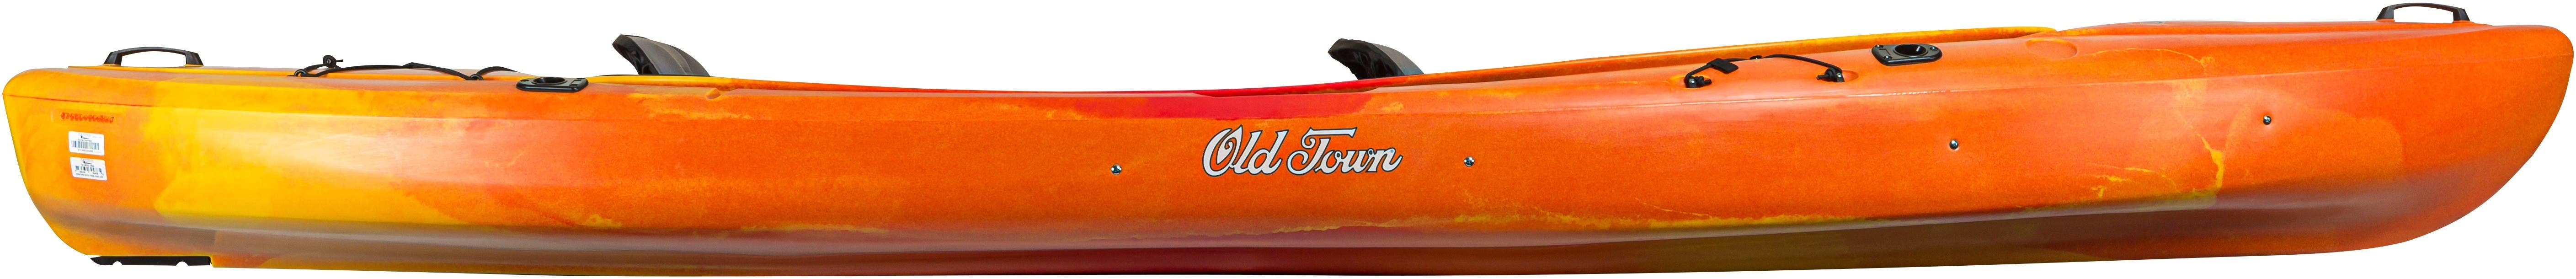 2021 Old Town boat for sale, model of the boat is Twin Heron & Image # 3 of 4